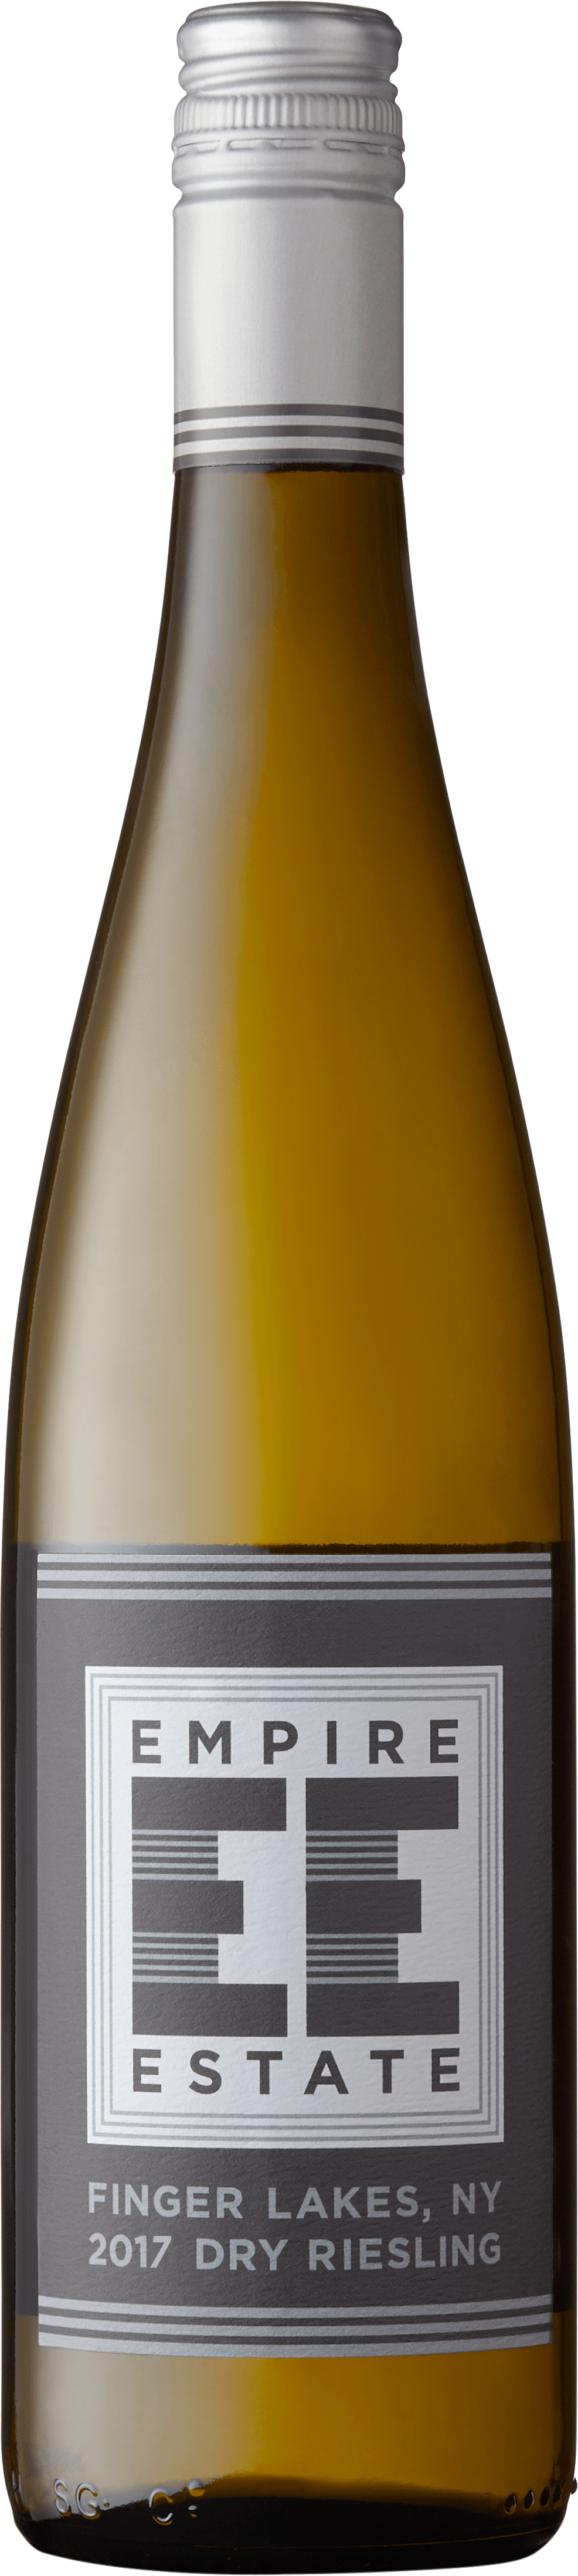 2017 Empire Estate Dry Riesling 750ml